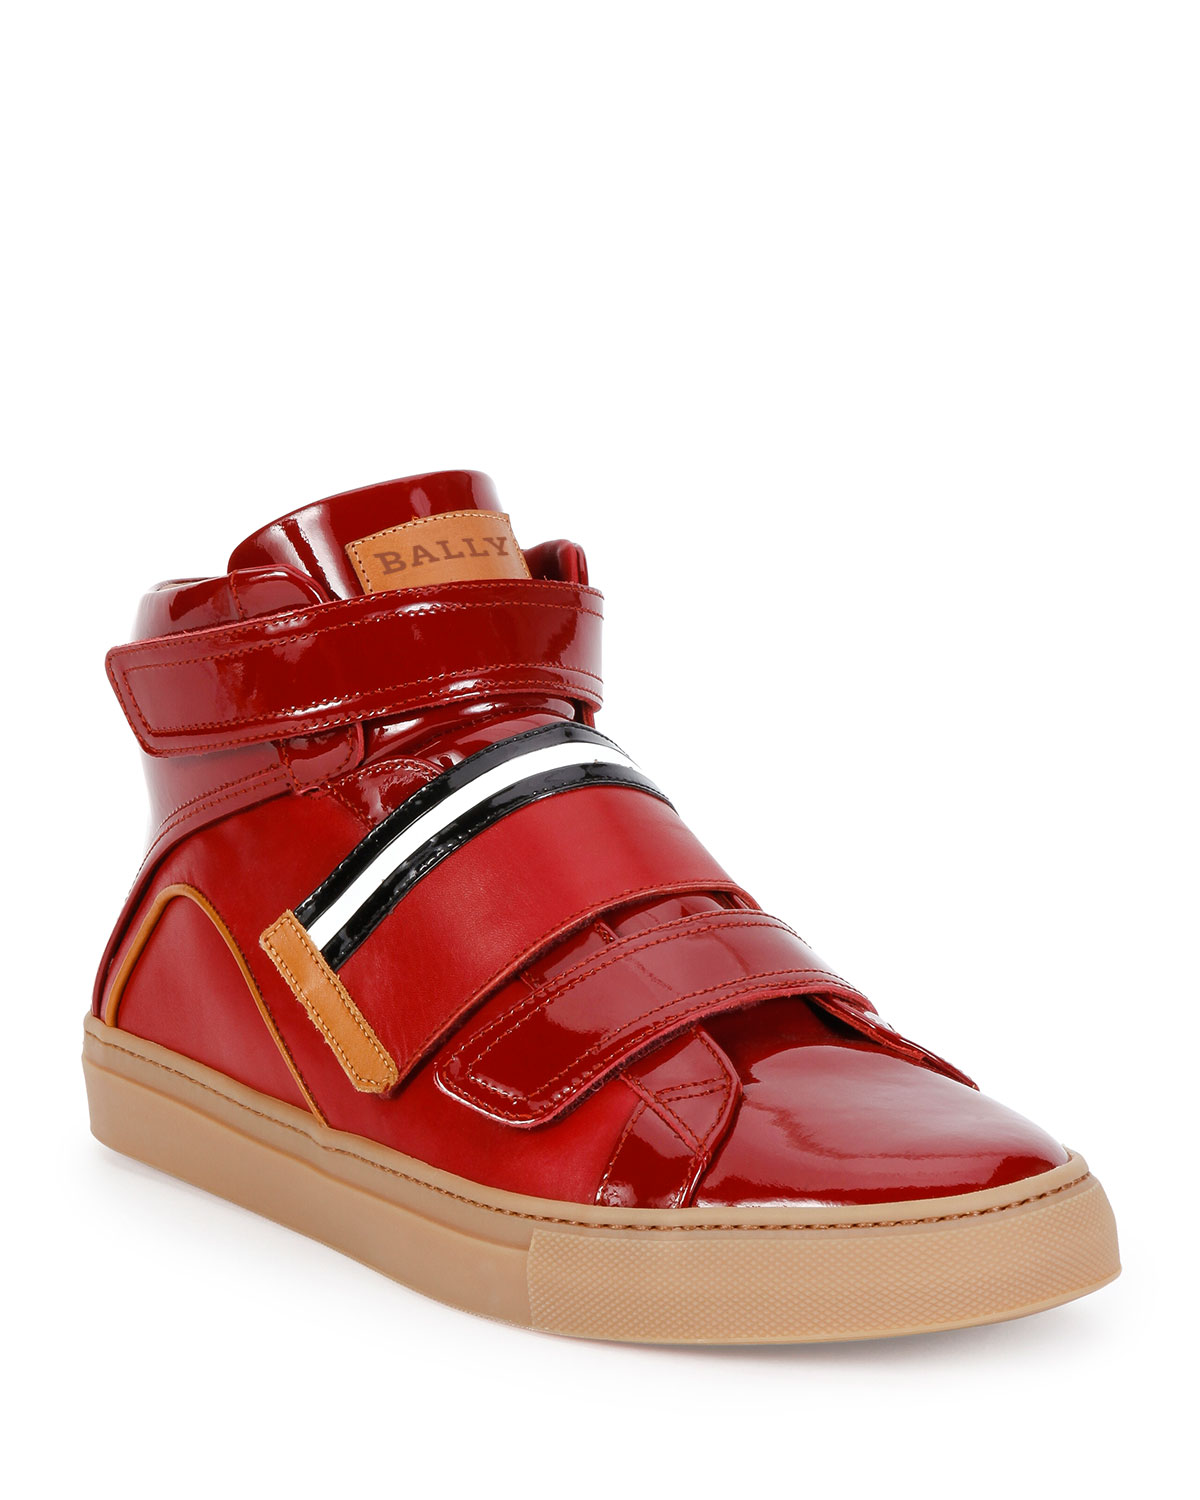 Bally Men S Herick Leather High Top Sneakers Red